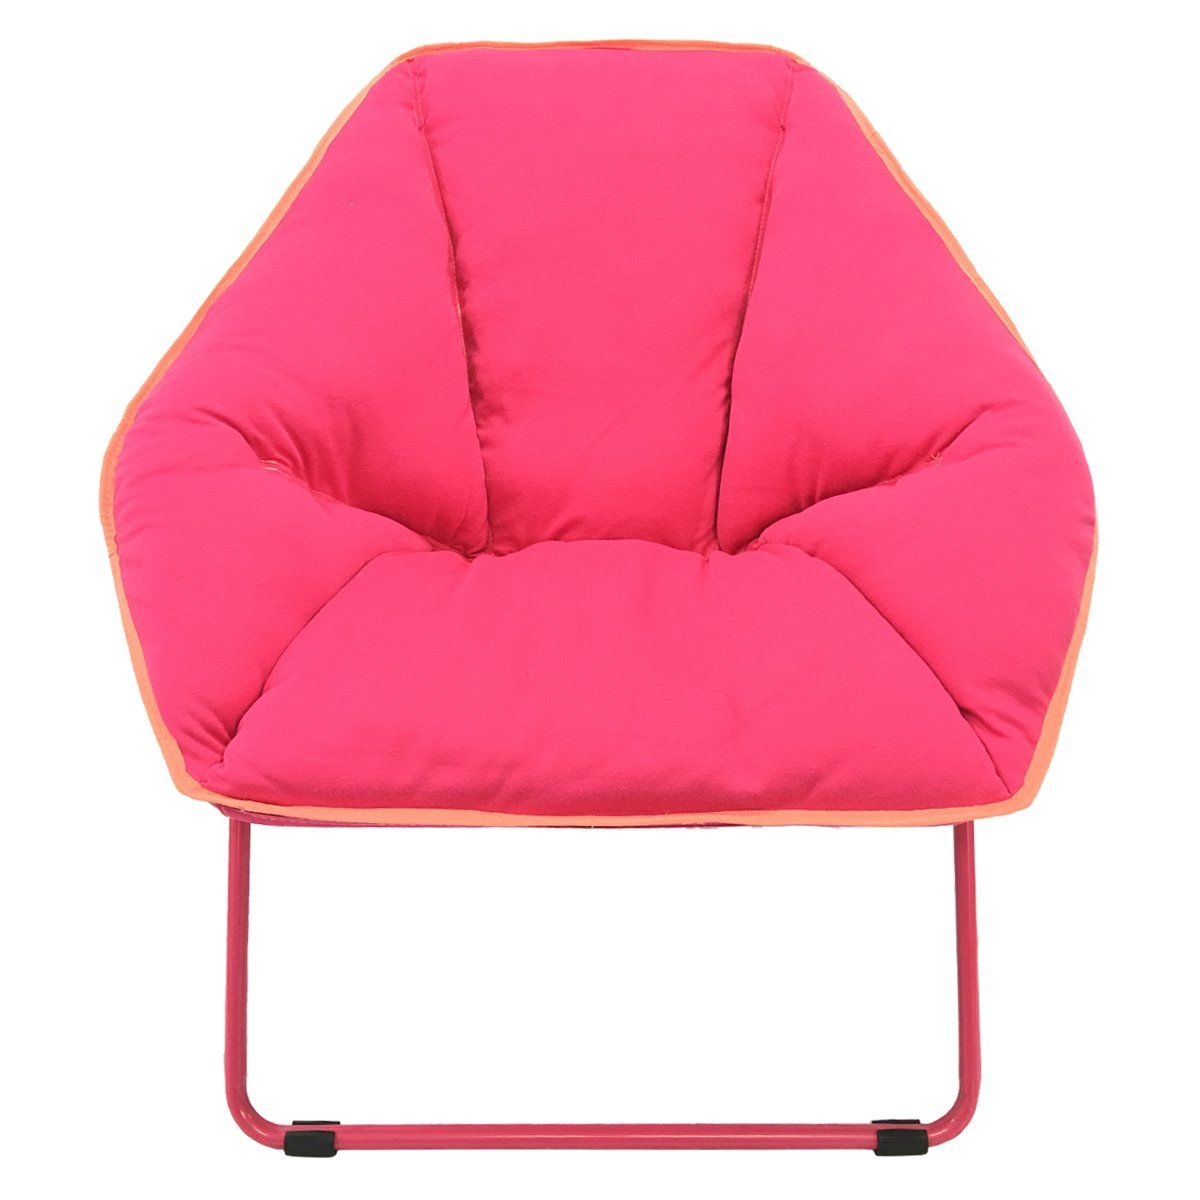 Stupendous Campzio Hexagonal Lounger Bungee Lounge Chair Round Bungee Pdpeps Interior Chair Design Pdpepsorg